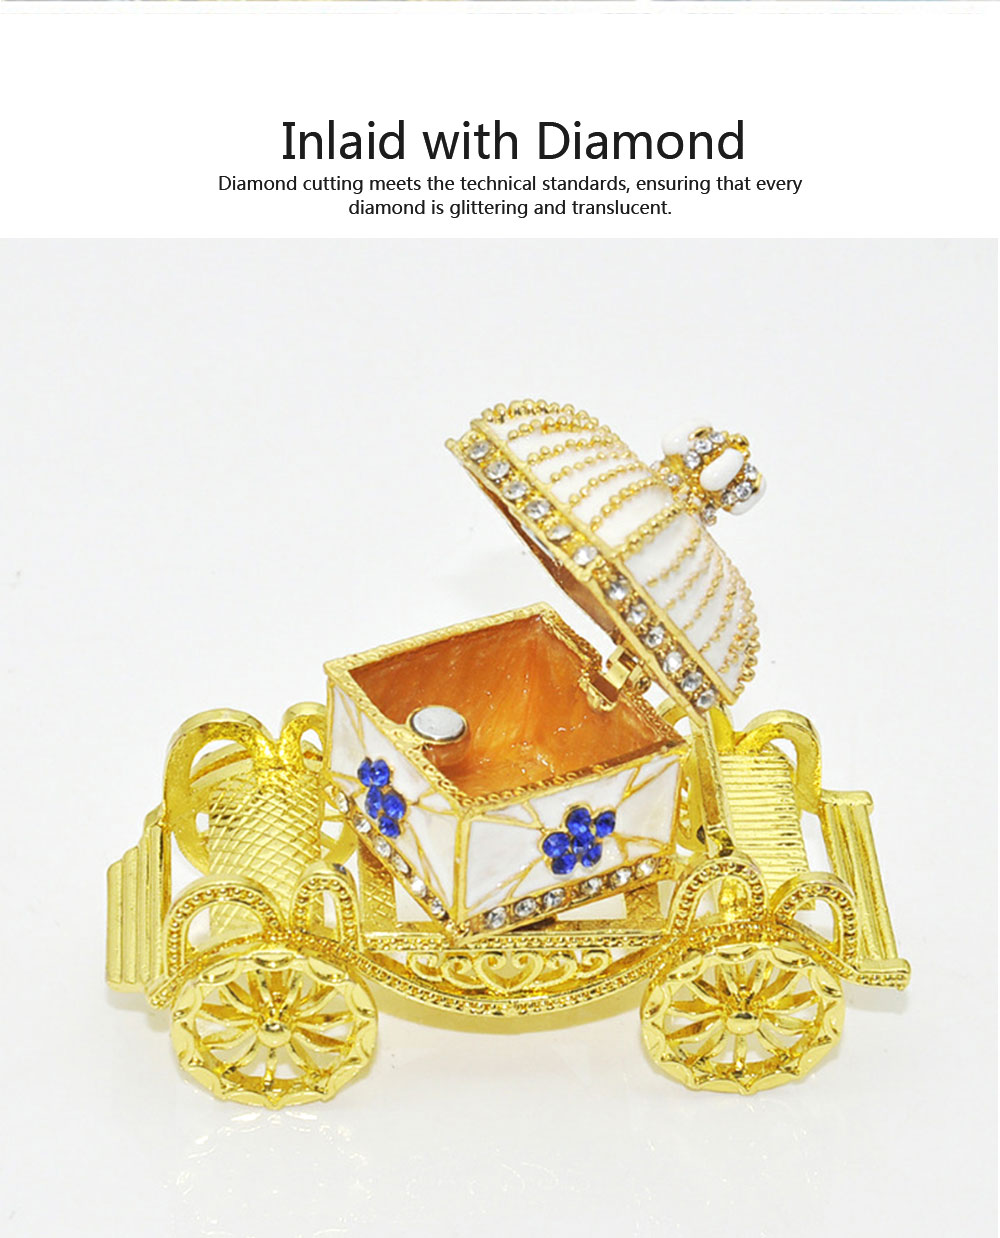 Diamond Crown Car European Enamel Painting Technology Creativity Metal Decoration for Home Valentine's Day Gift 2